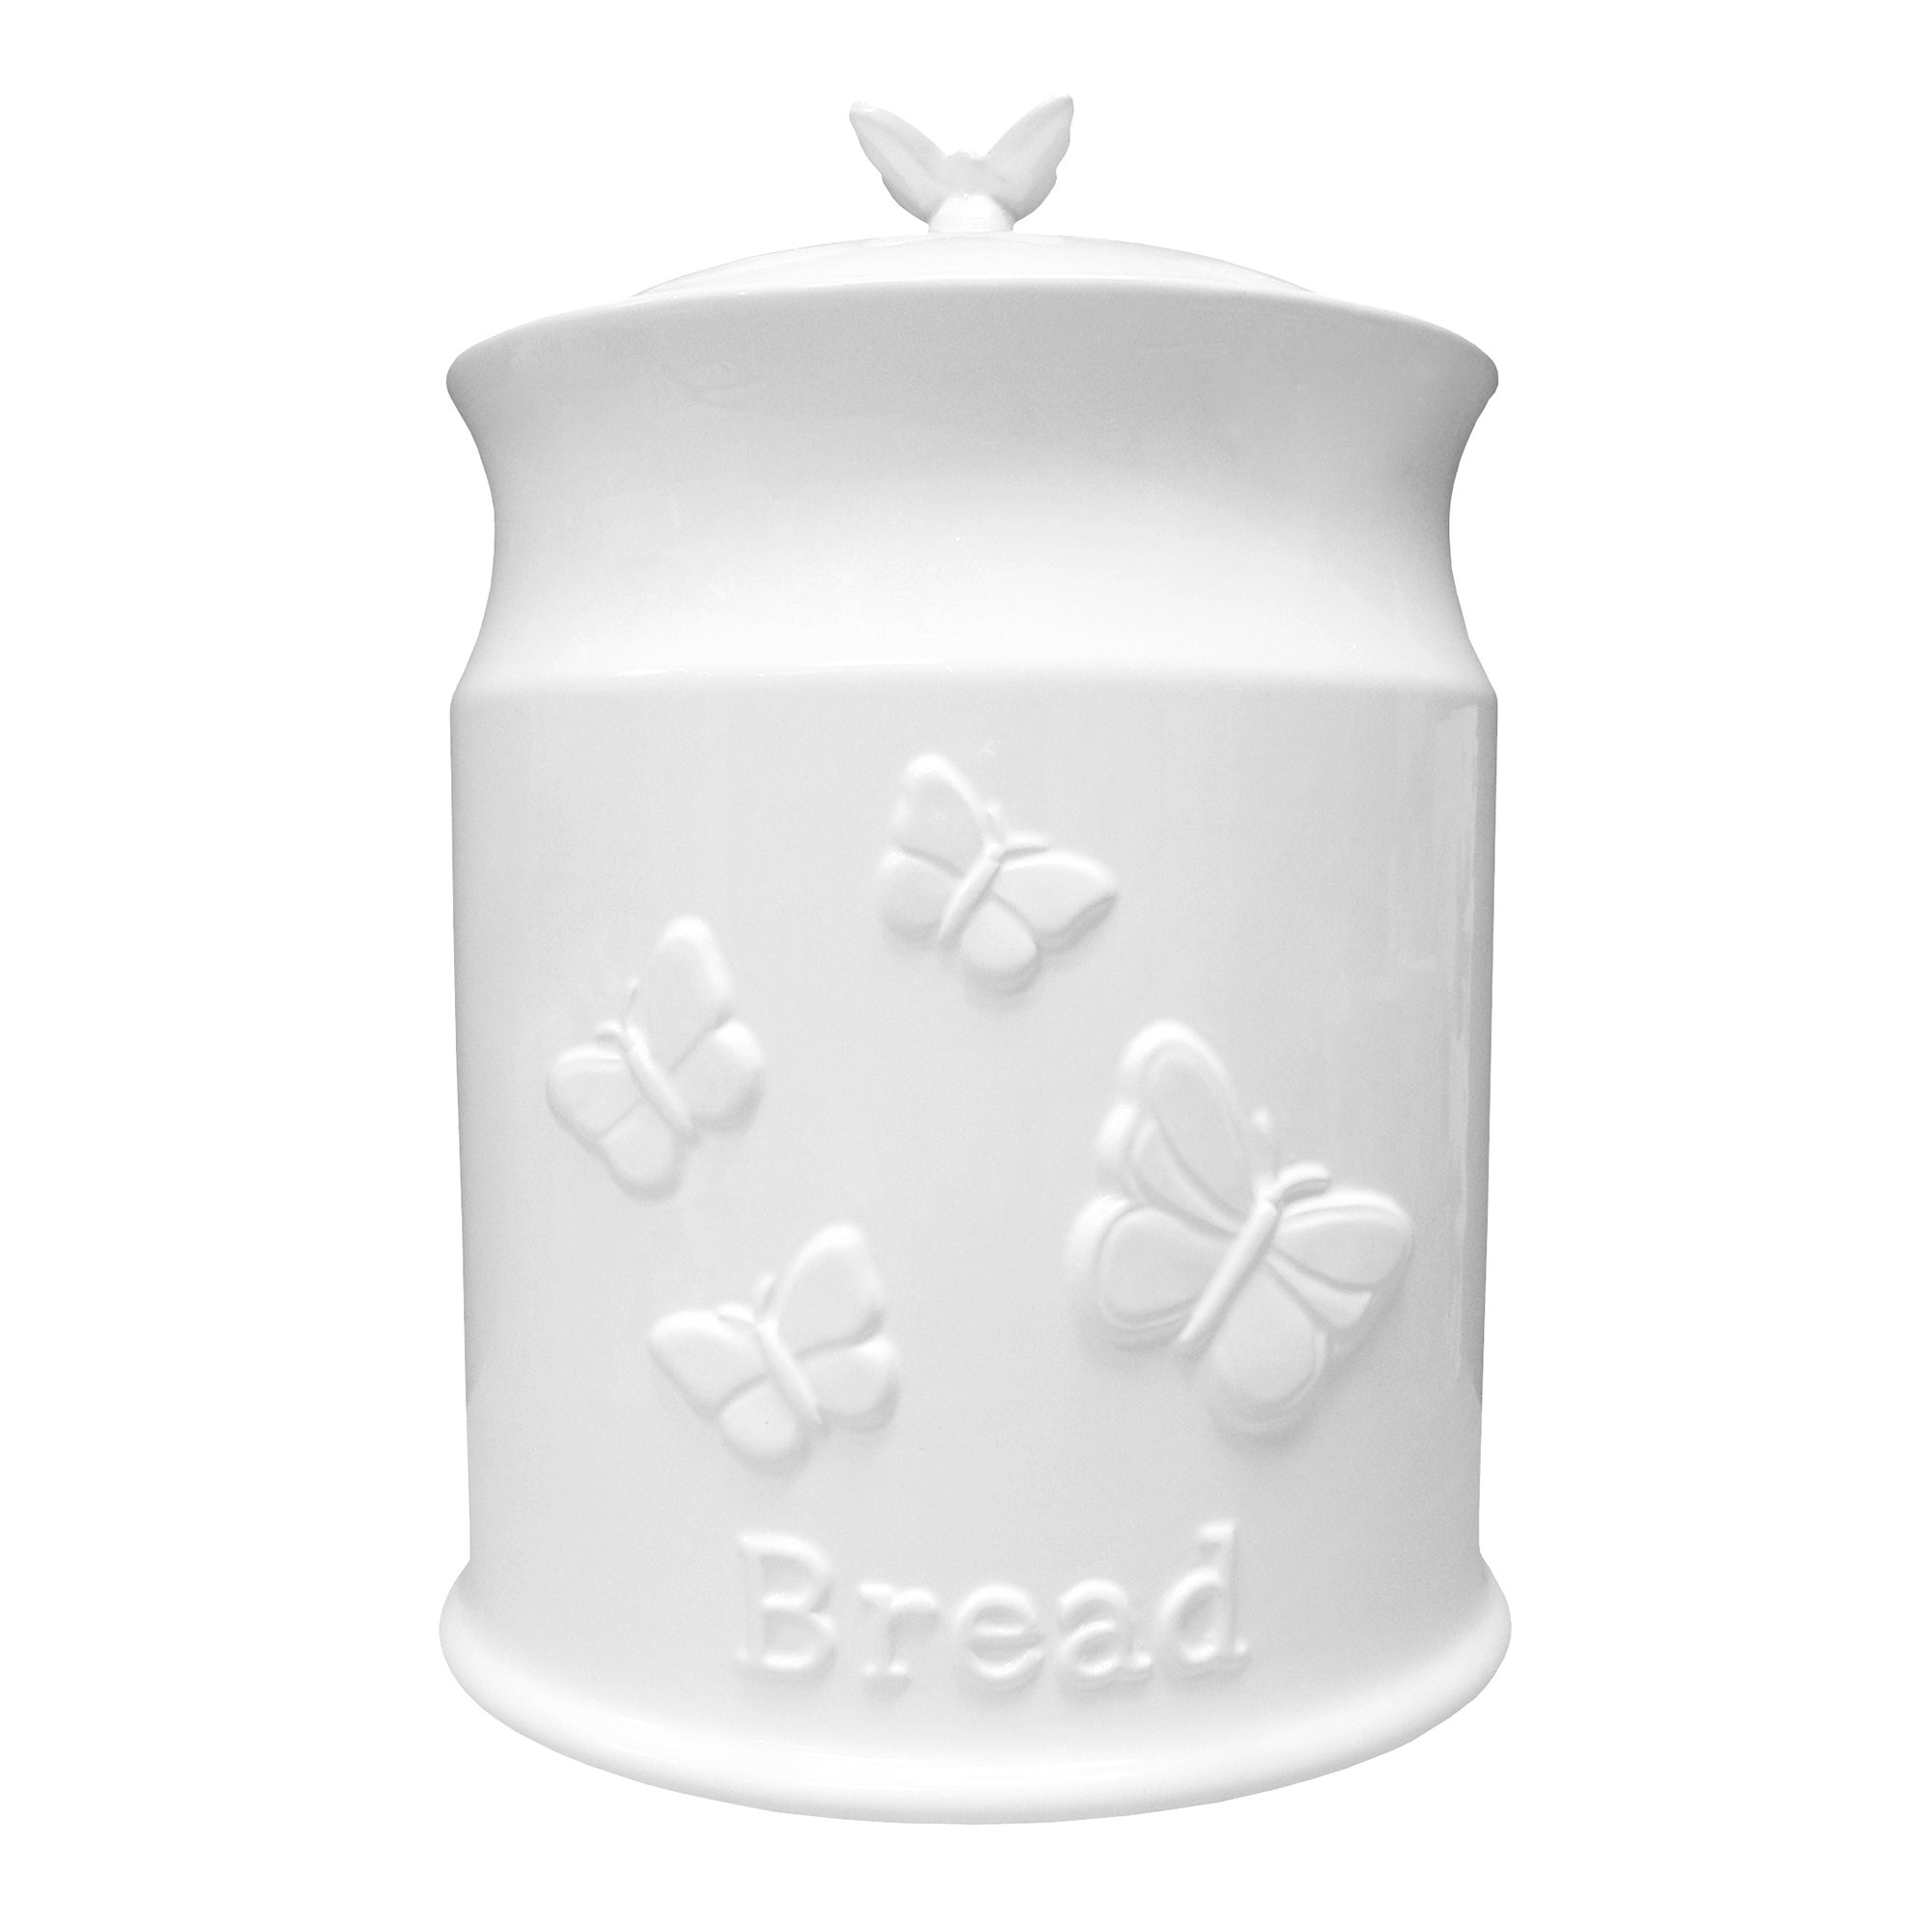 White Butterflies Collection Embossed Bread Crock